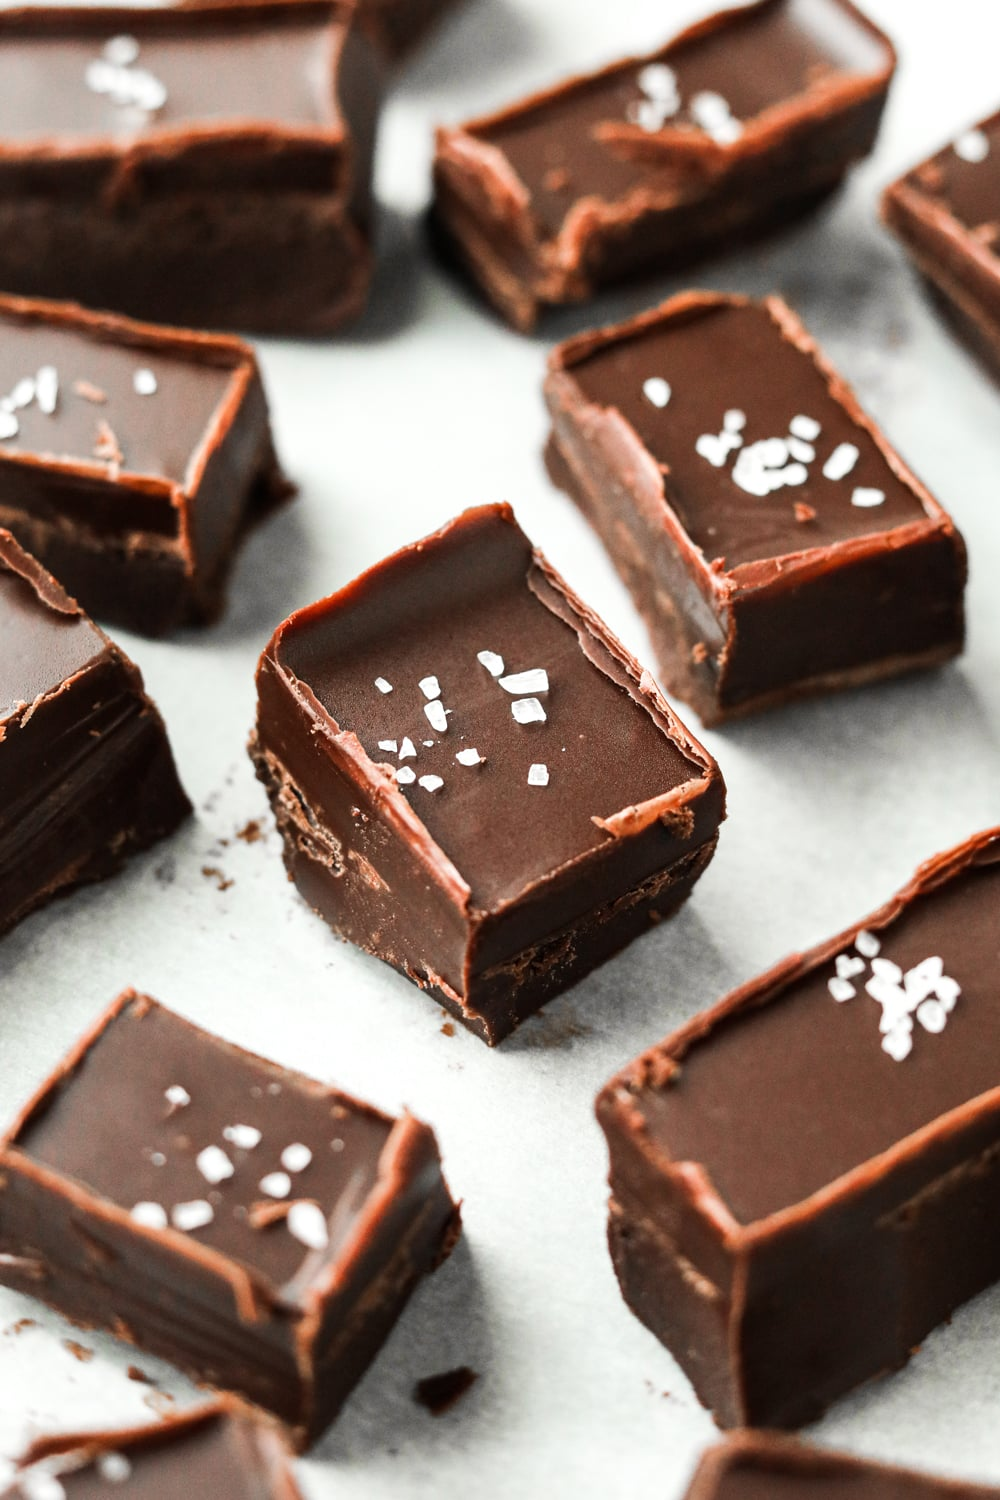 Chocolate fudge topped with coarse salt on a white piece of paper.